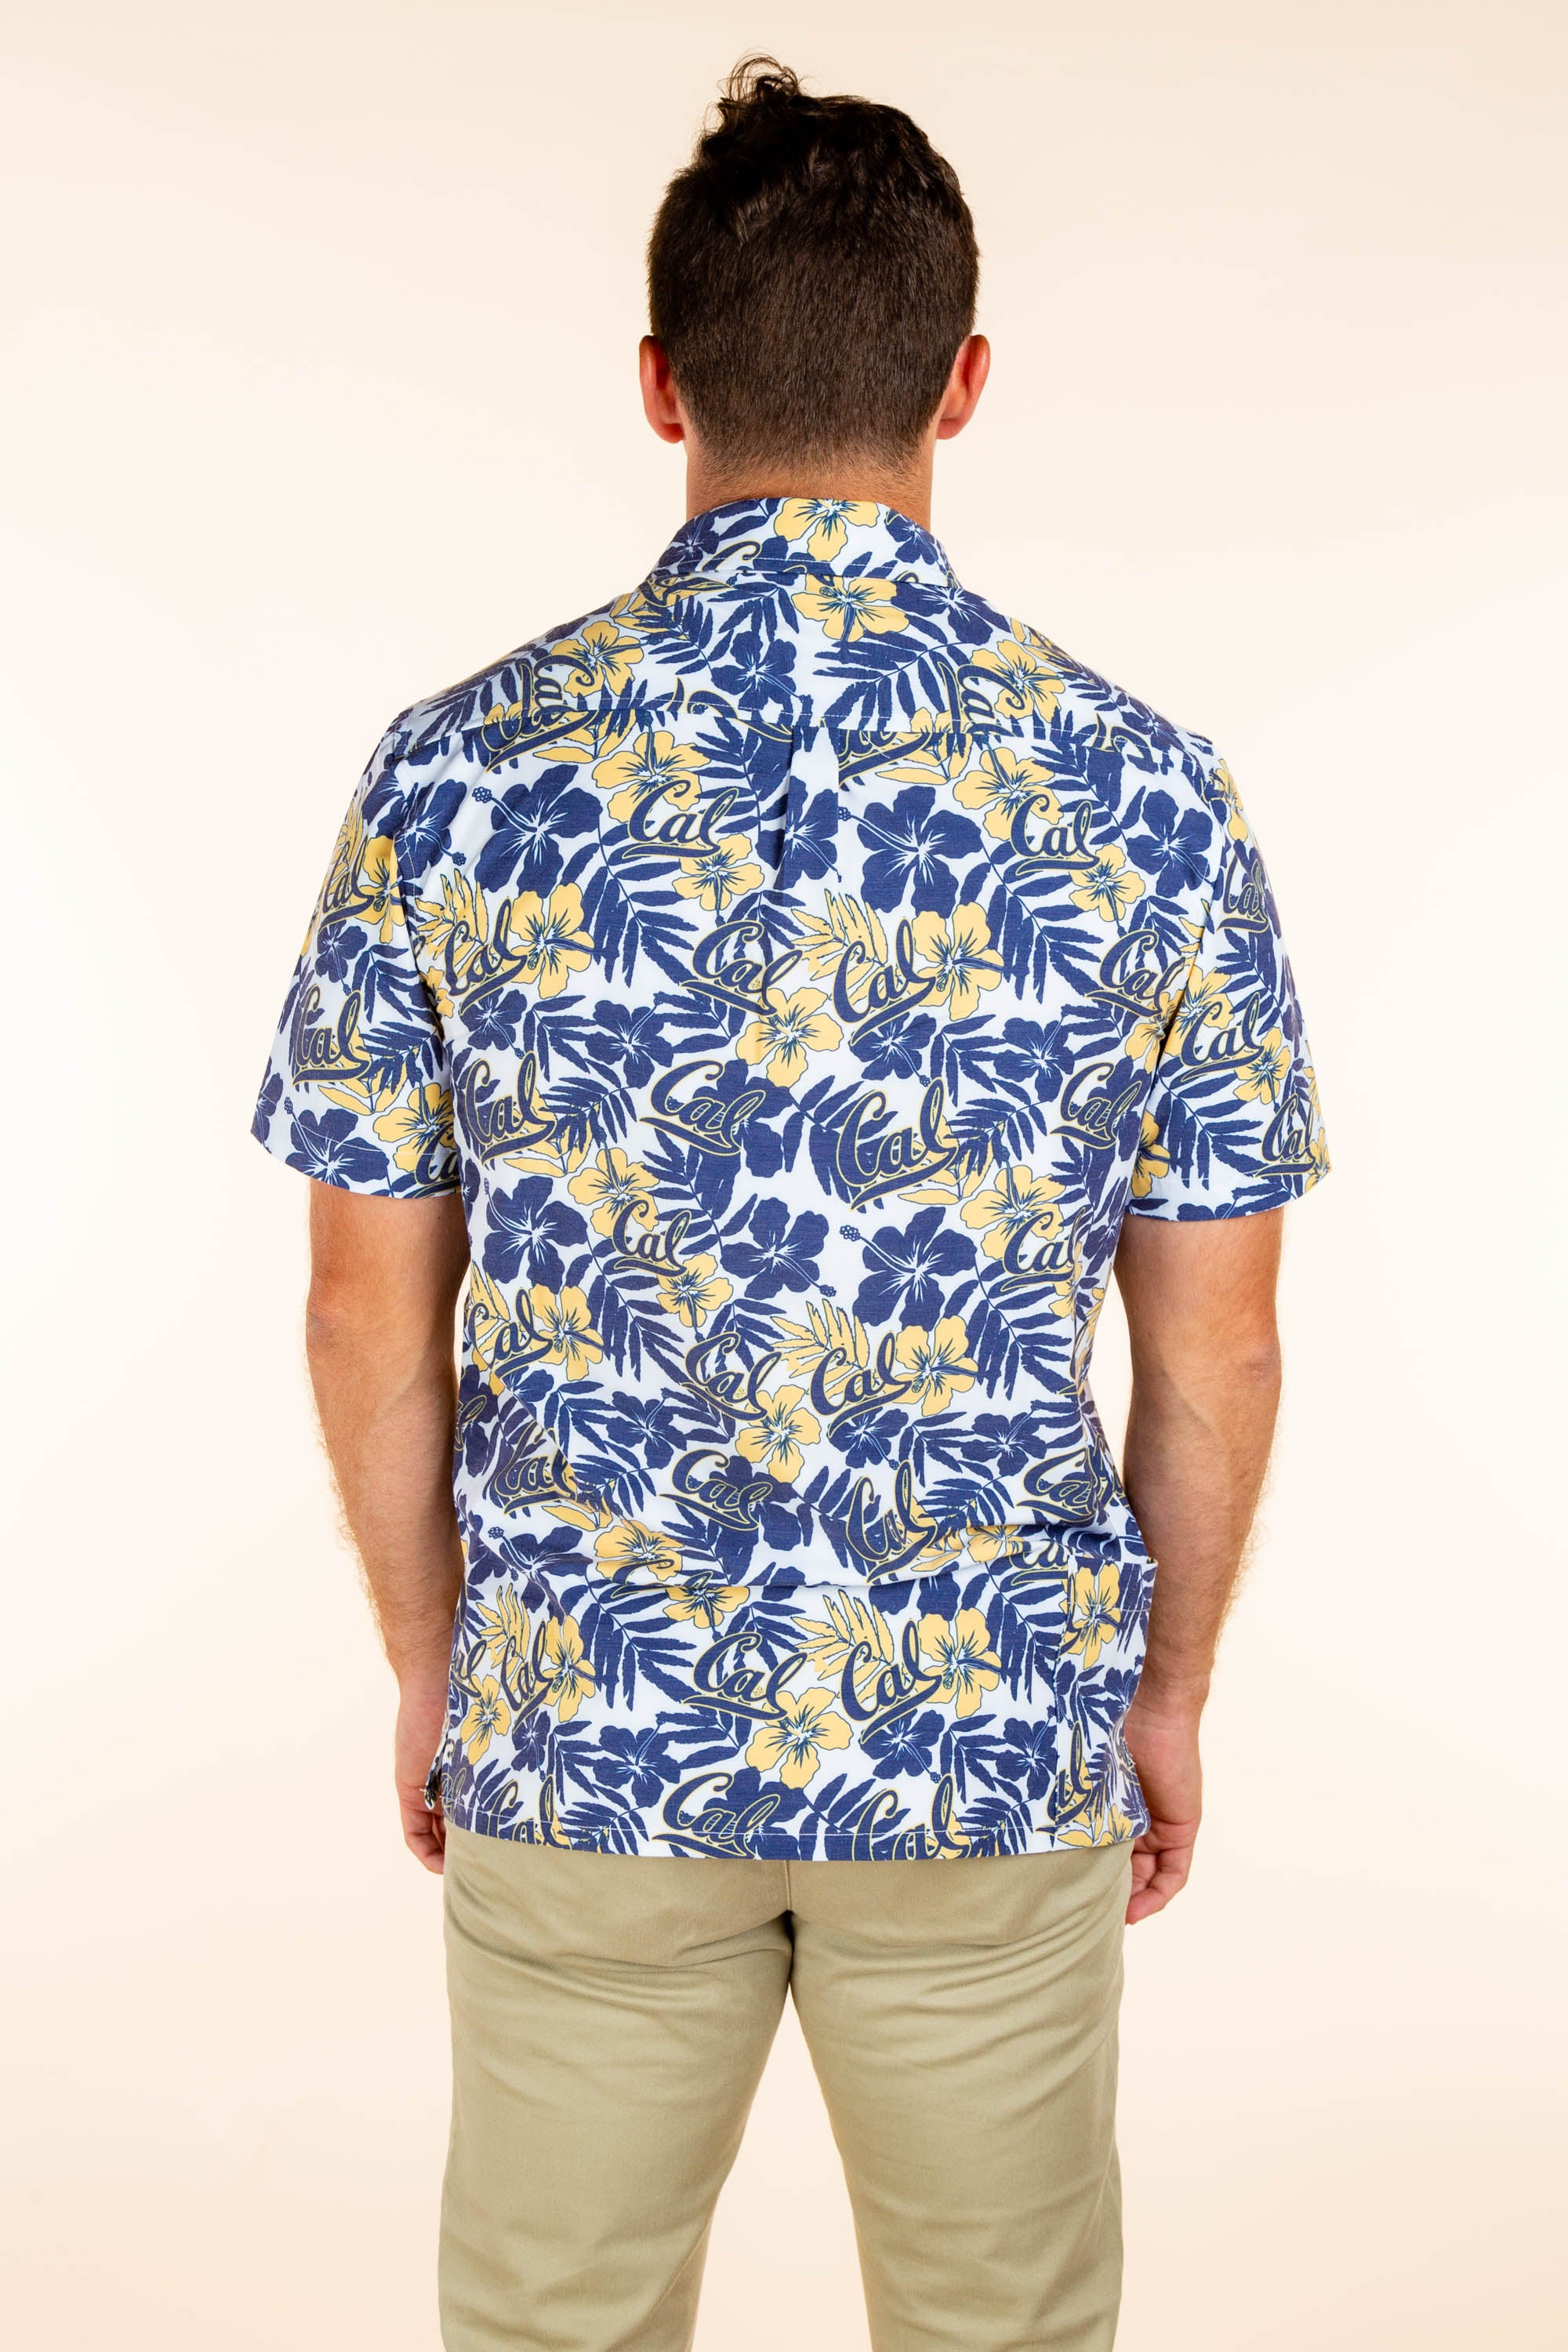 California Berkeley Hawaiian Shirt